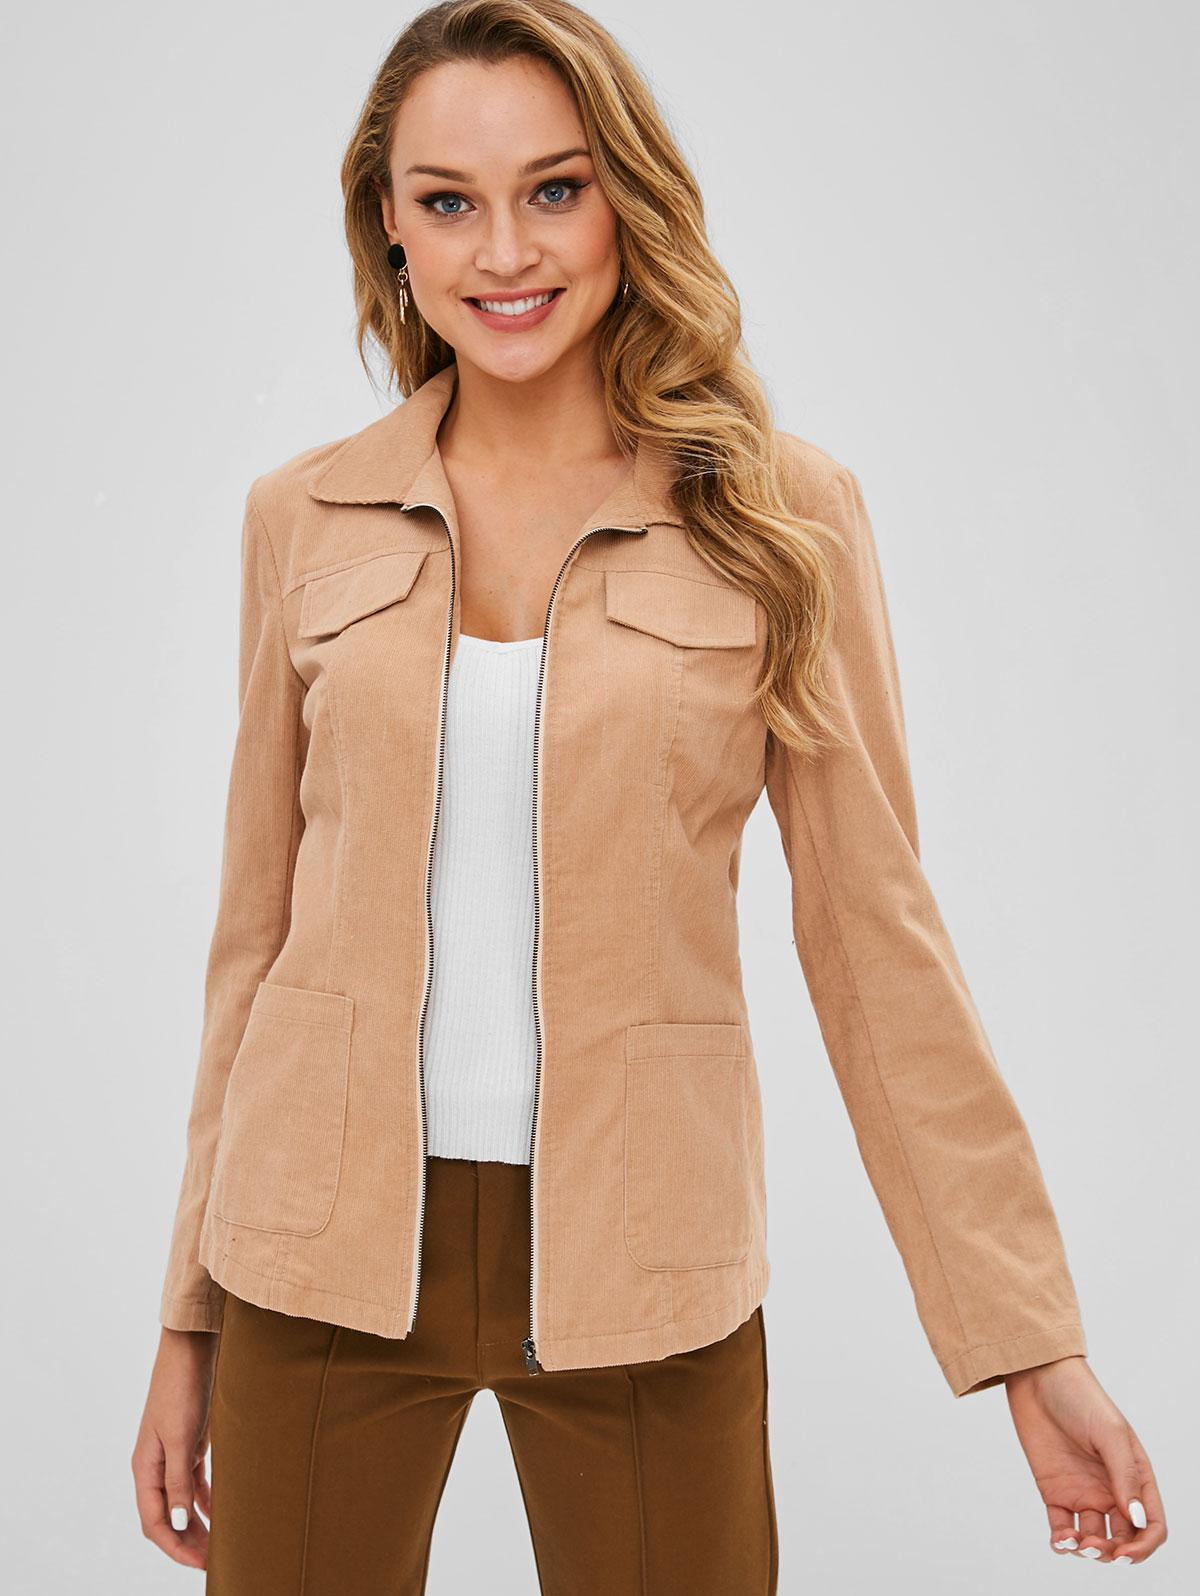 ZAFUL Corduroy Zip Pocket Jacket with Belt, Camel brown